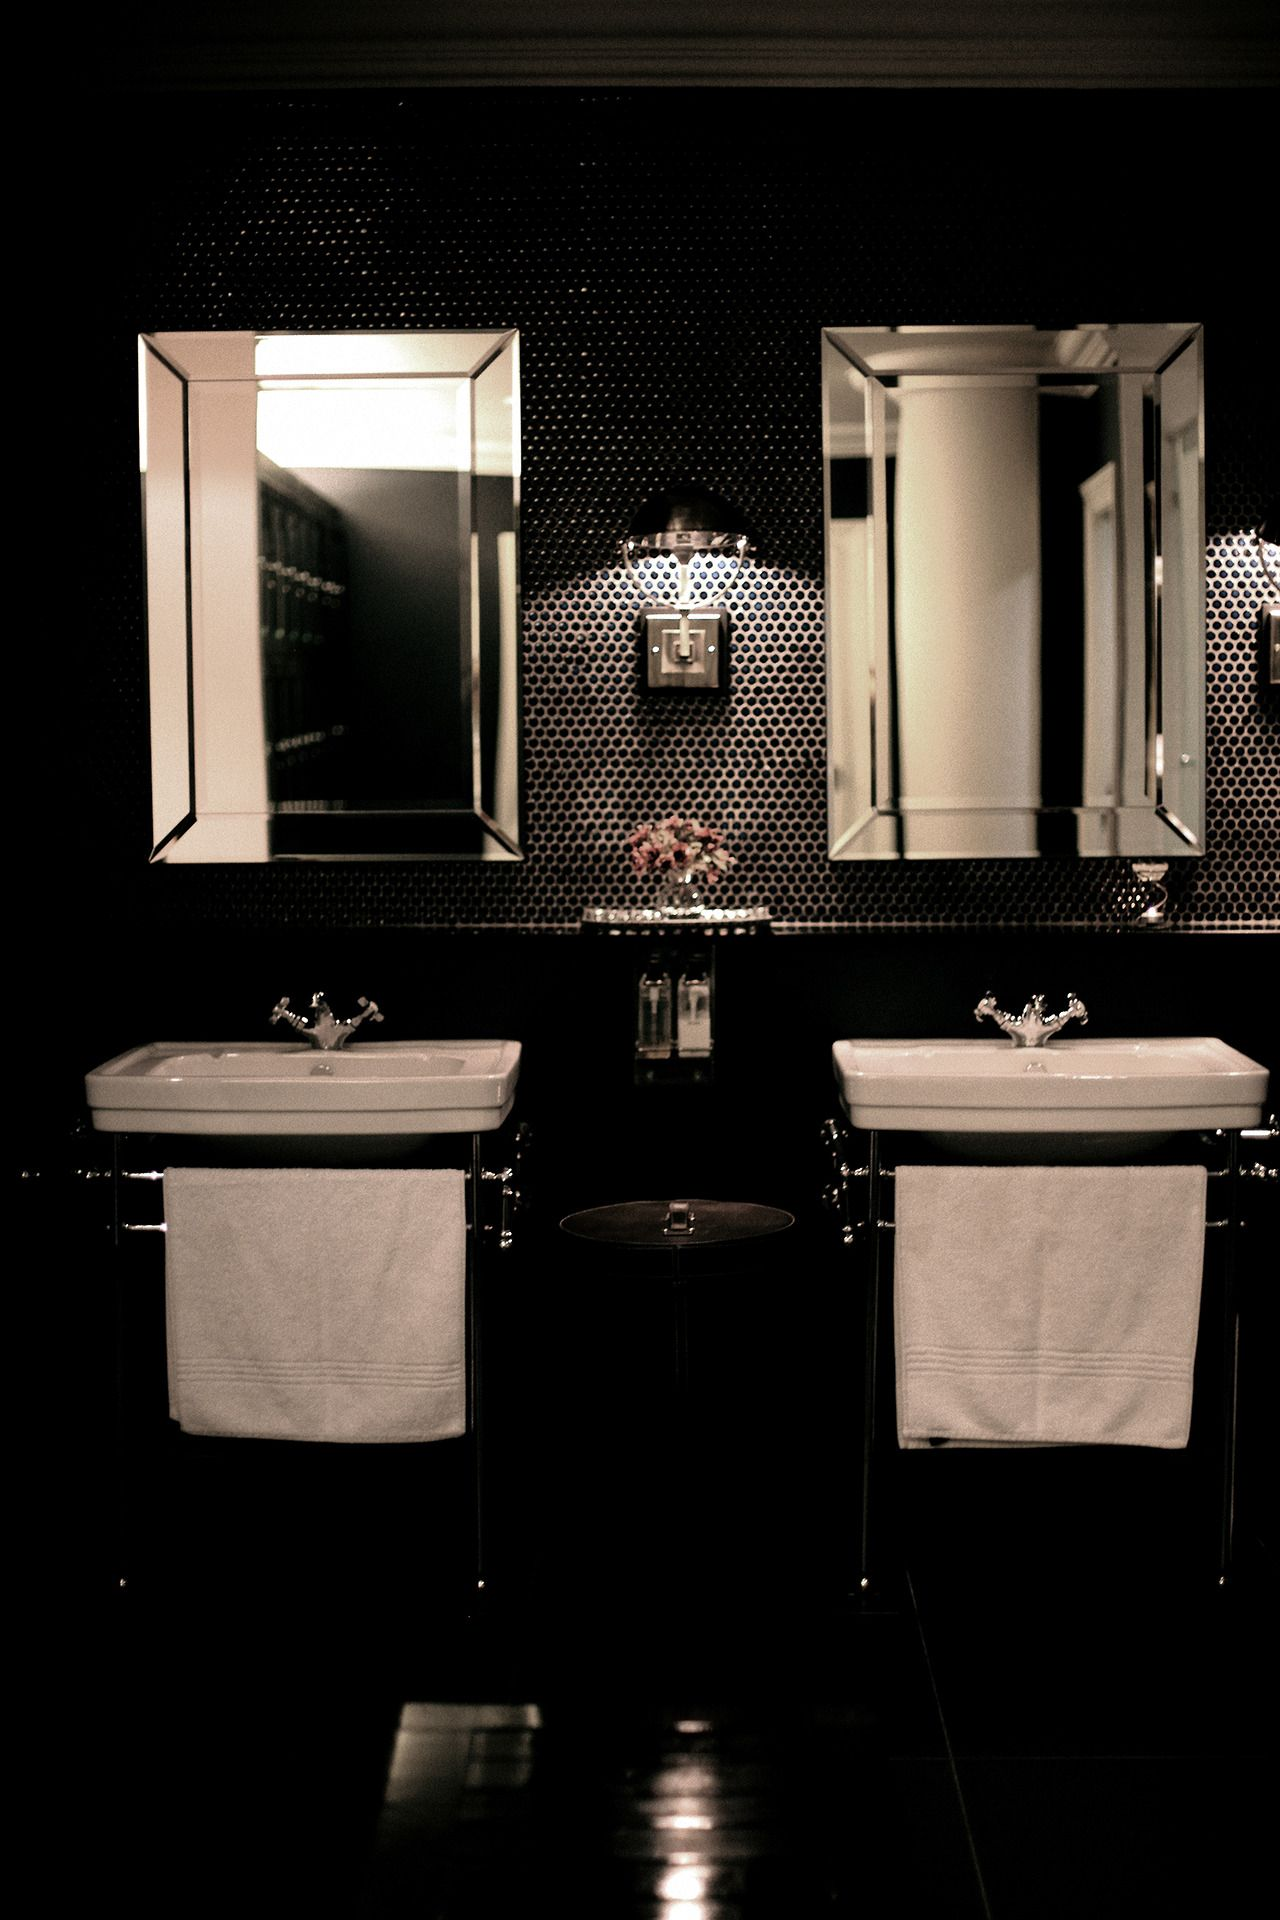 Black Tiled Bathroom Equinox Spa Black Tiled Bathroom Gym Design Black